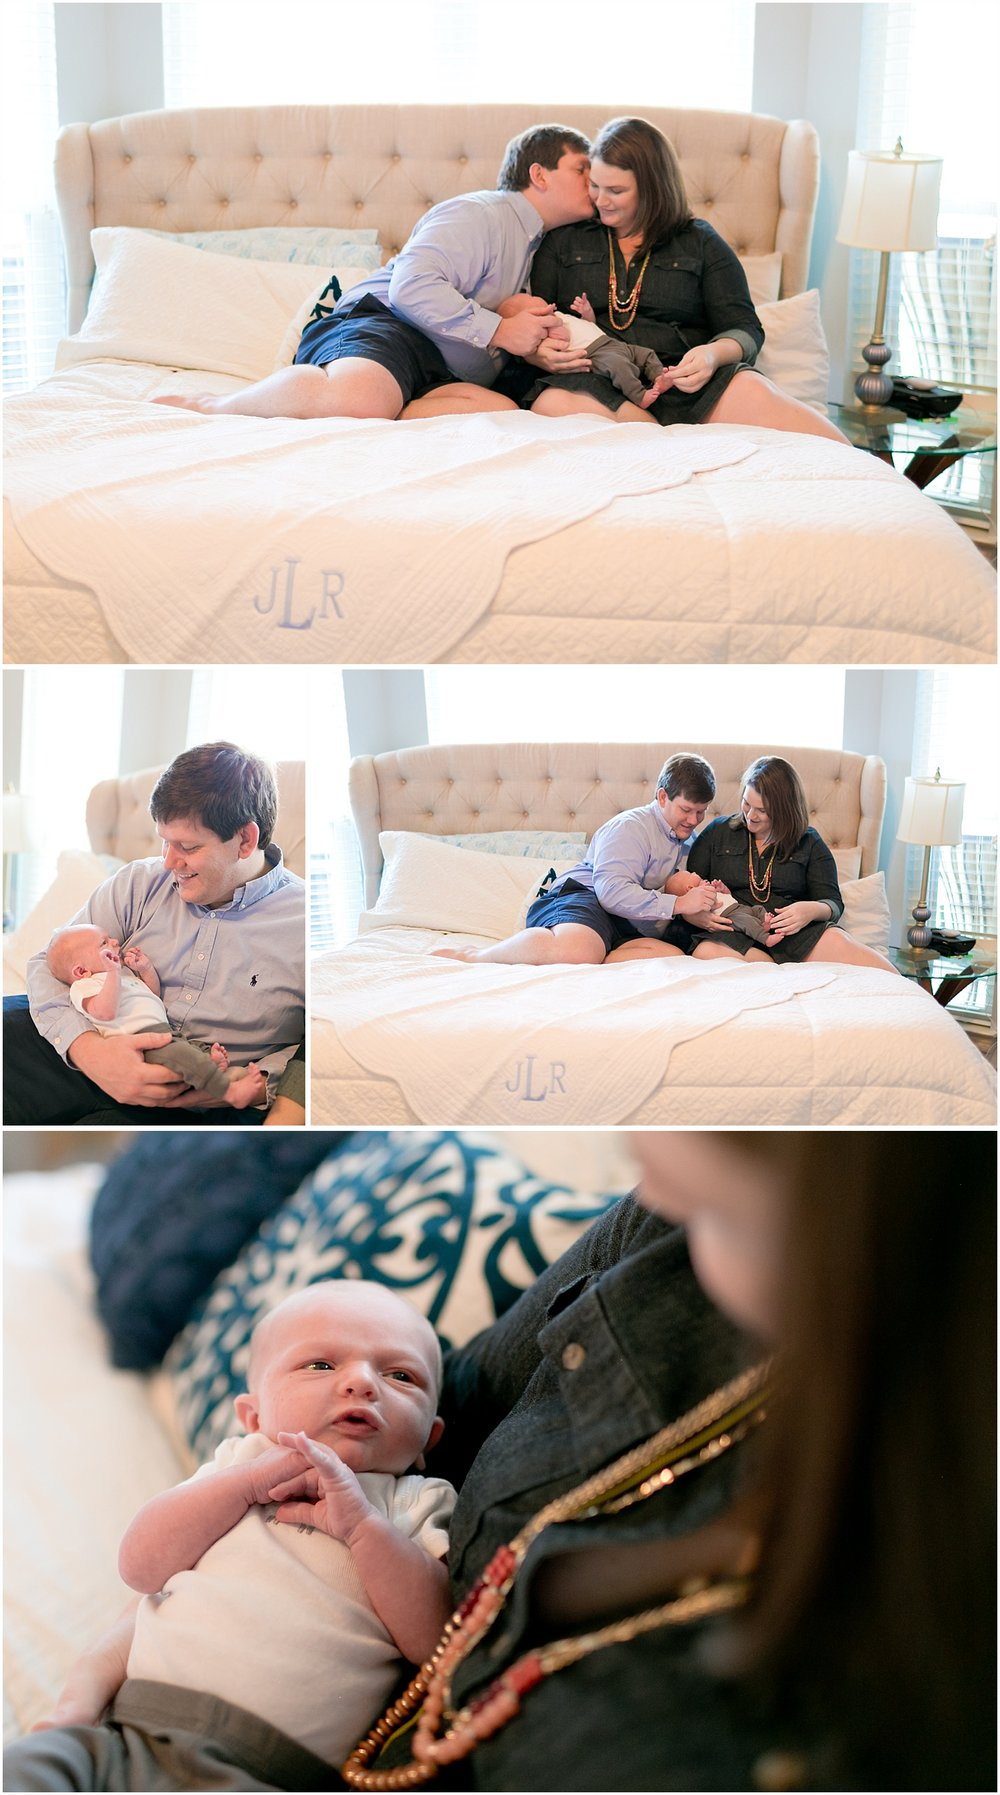 lifestyle newborn photography - family snuggled on bed with baby boy